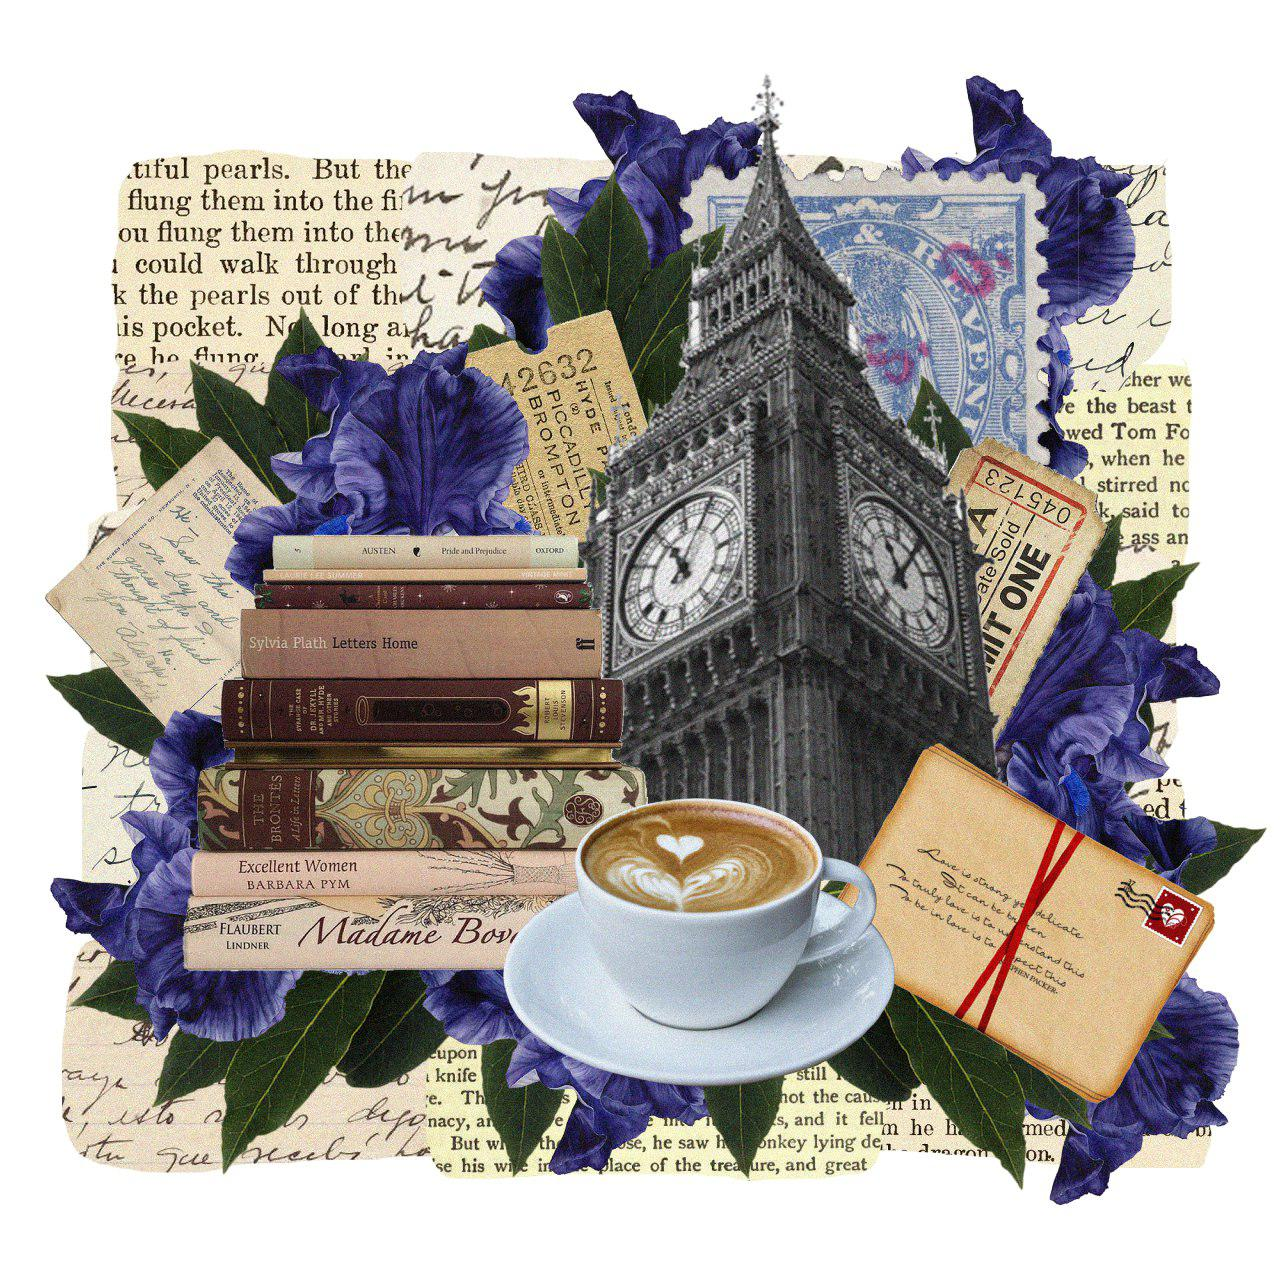 Collage con libros, flores y el Big Ben